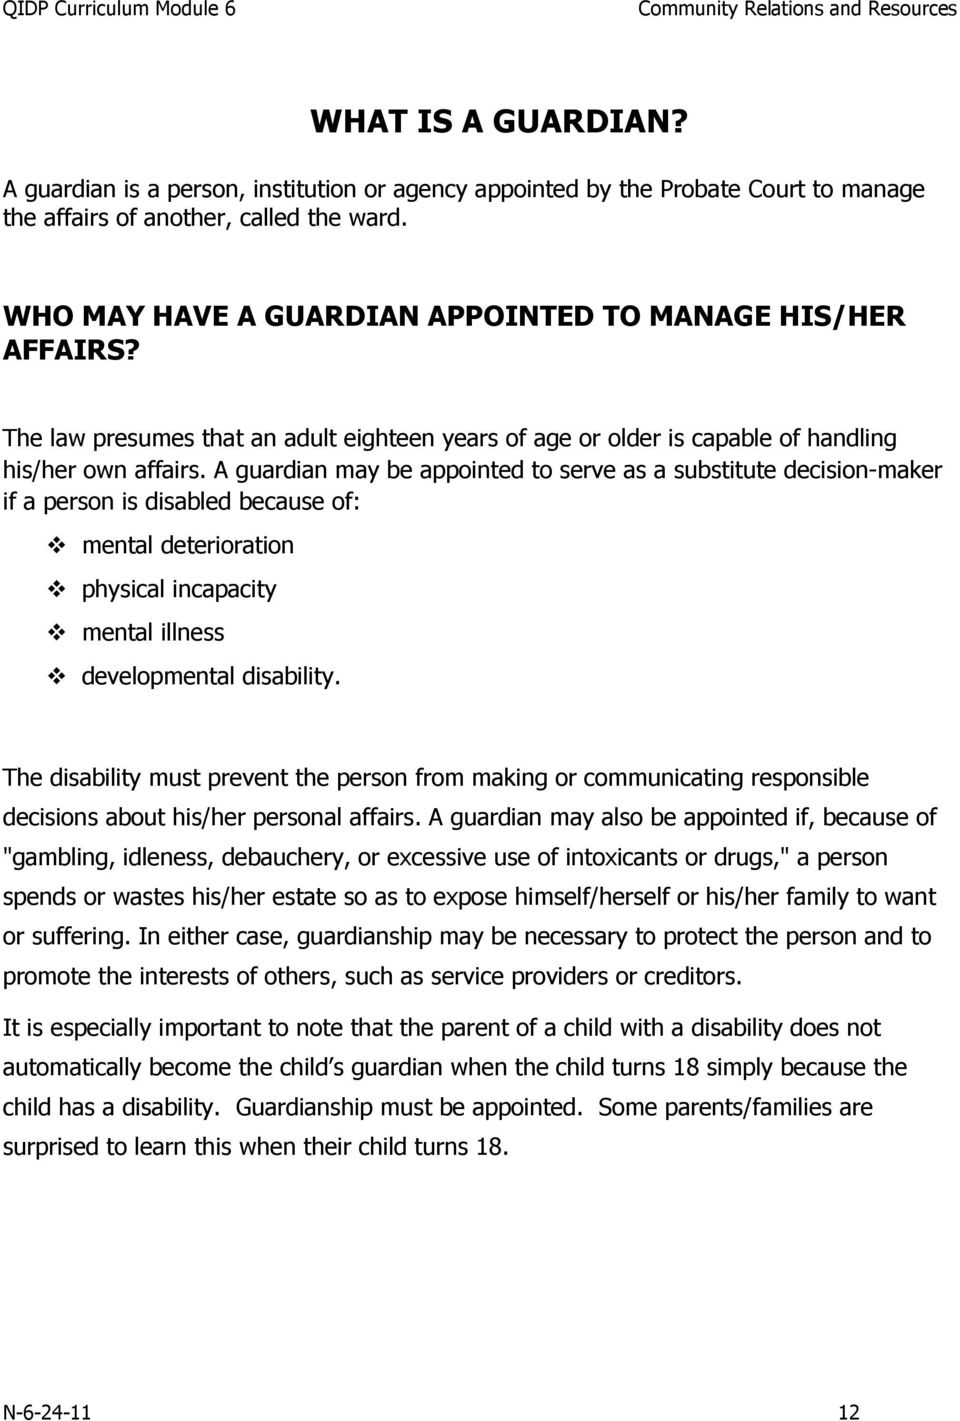 A guardian may be appointed to serve as a substitute decision-maker if a person is disabled because of: mental deterioration physical incapacity mental illness developmental disability.